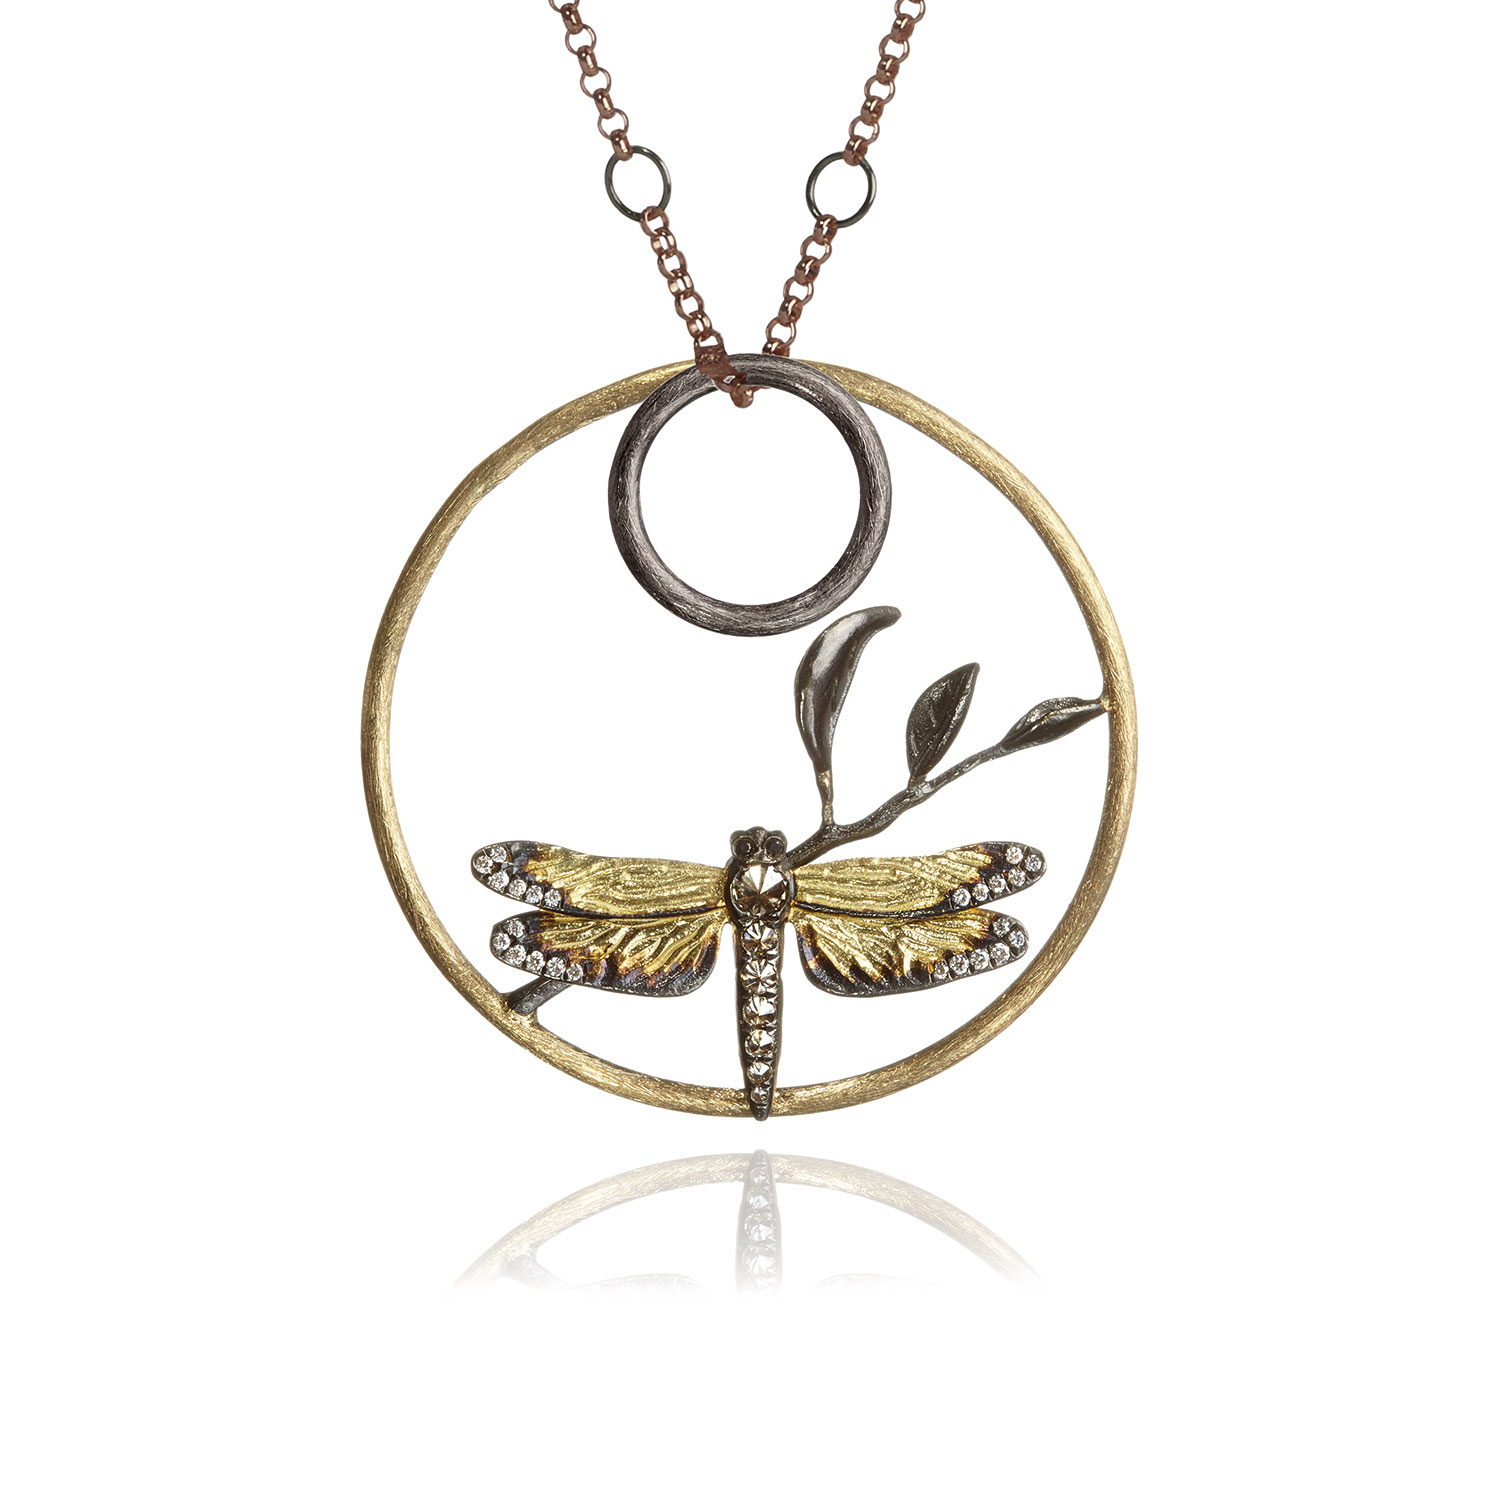 18ct-Gold-&-Diamond-Hoopla-Dragonfly-Pendant-£2900-(worn-as-necklace)